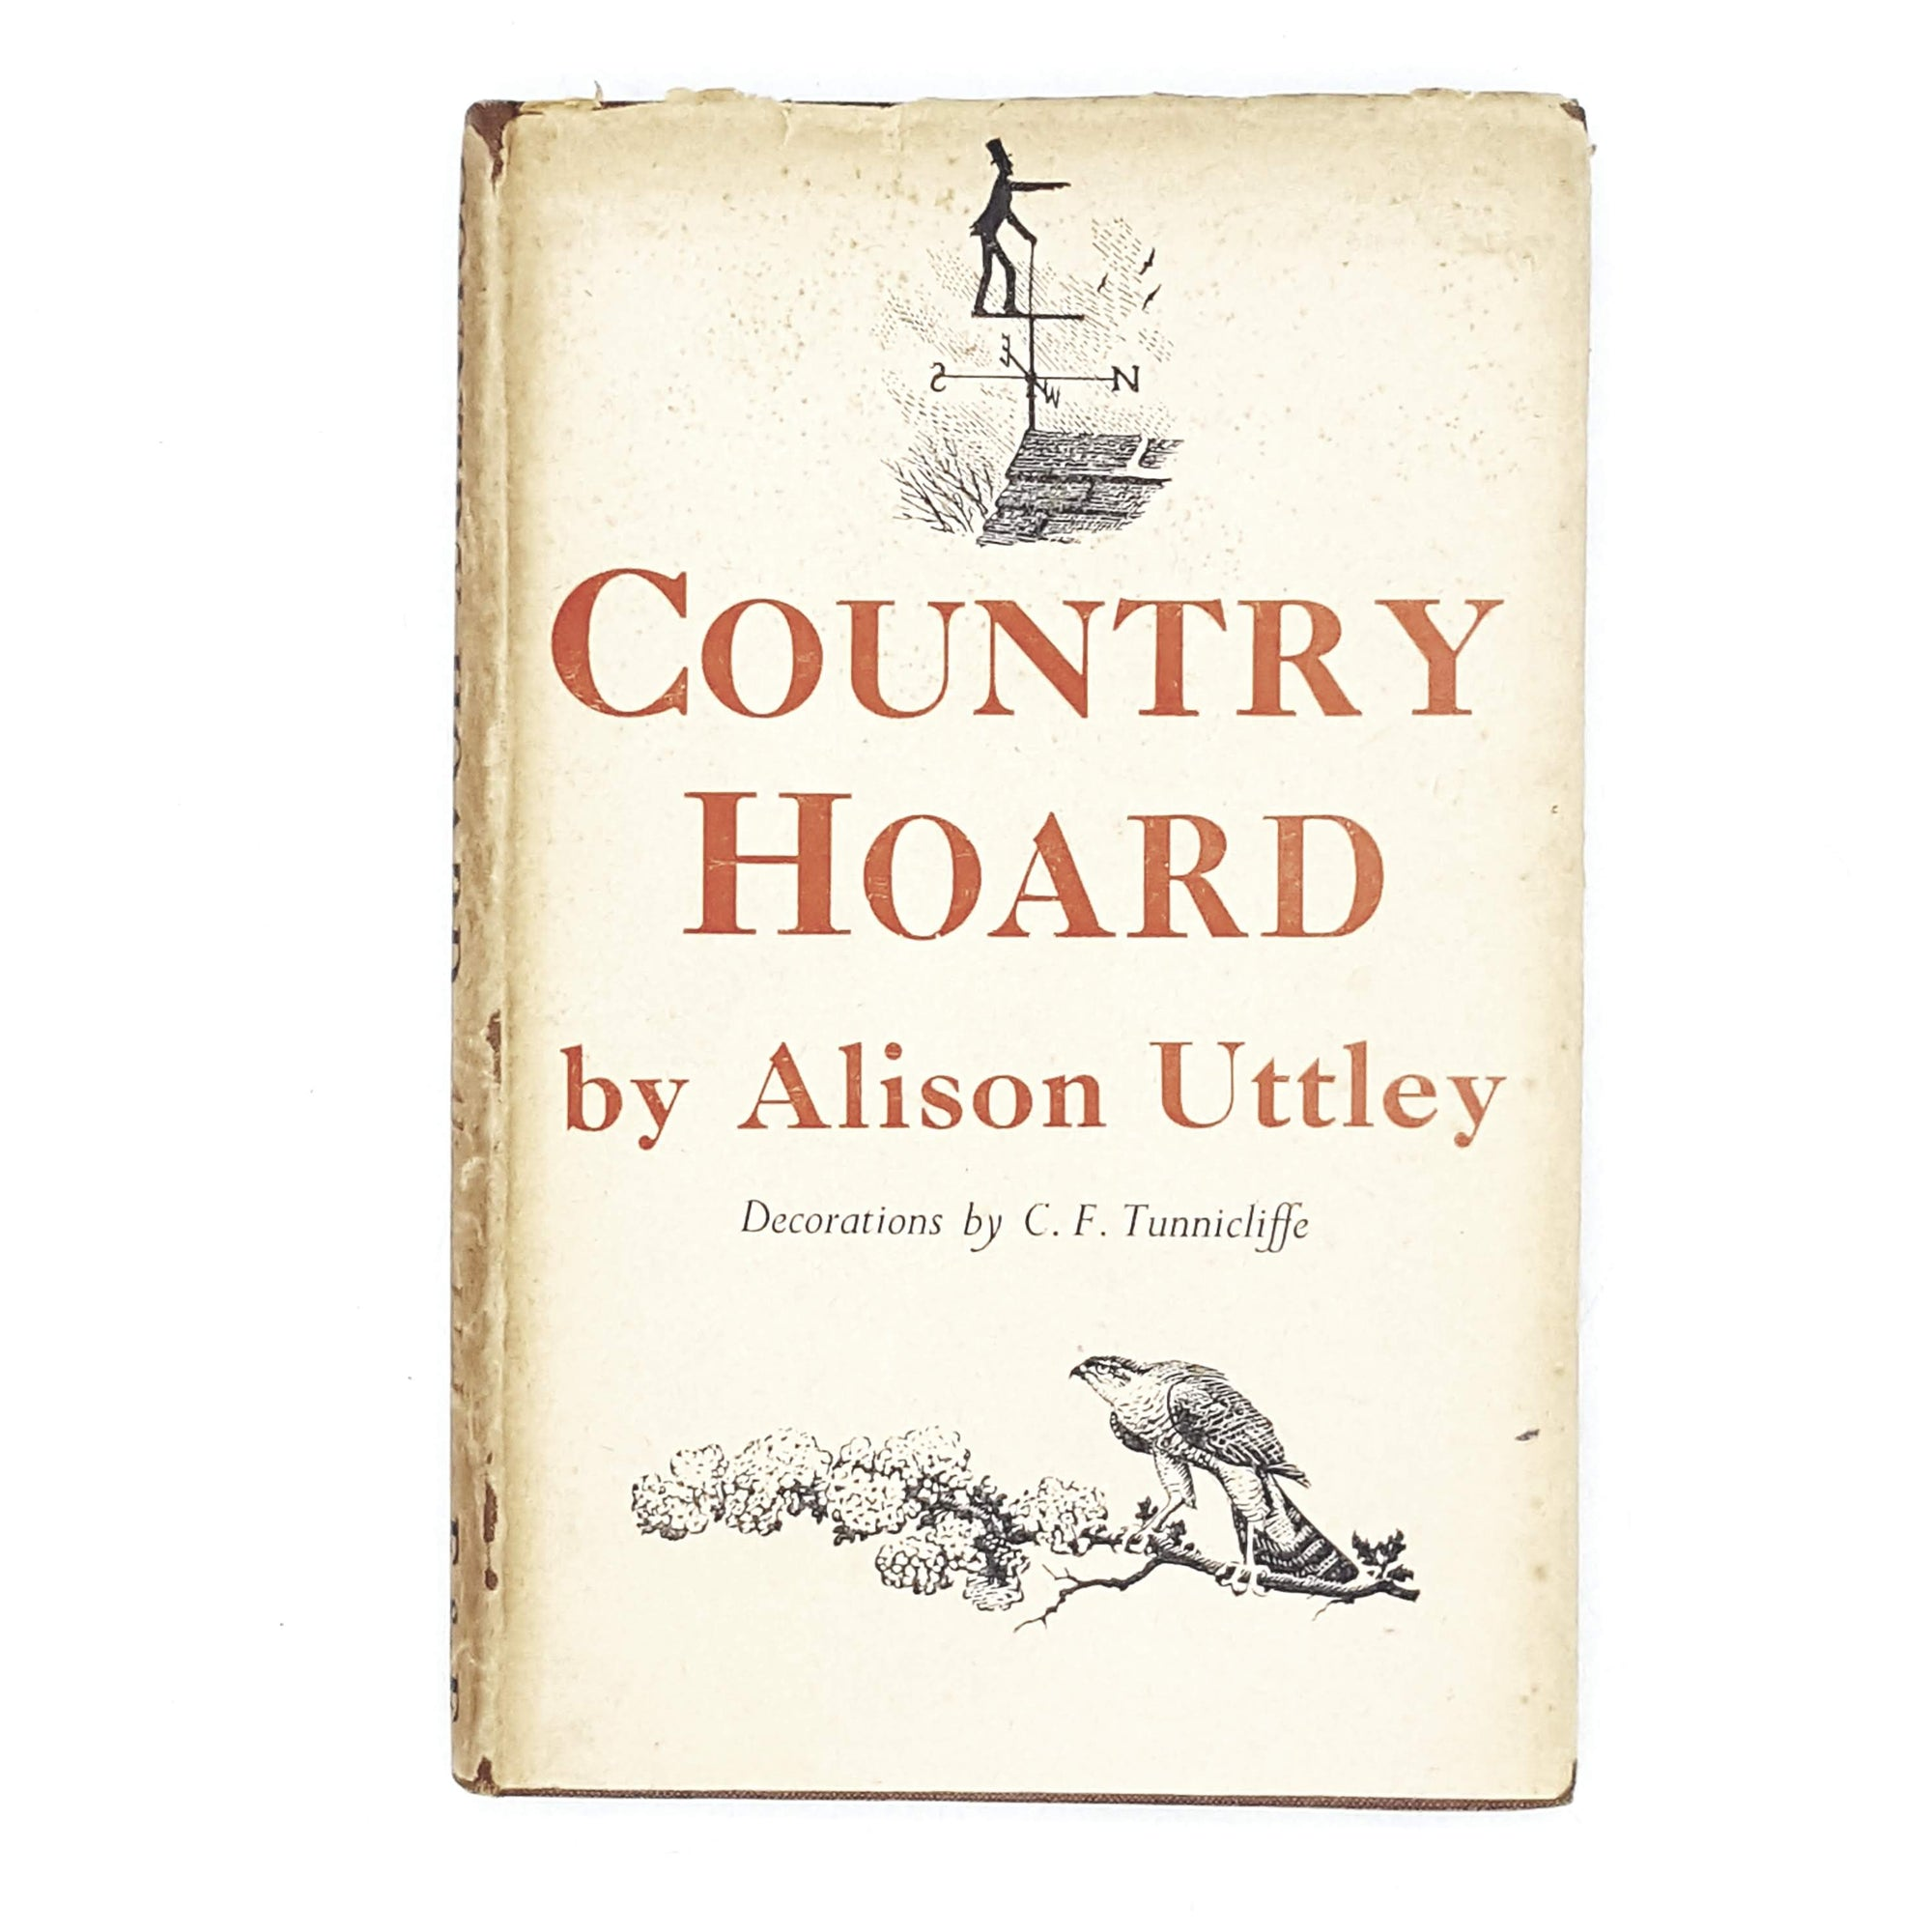 Country Hoard by Alison Uttley 1943